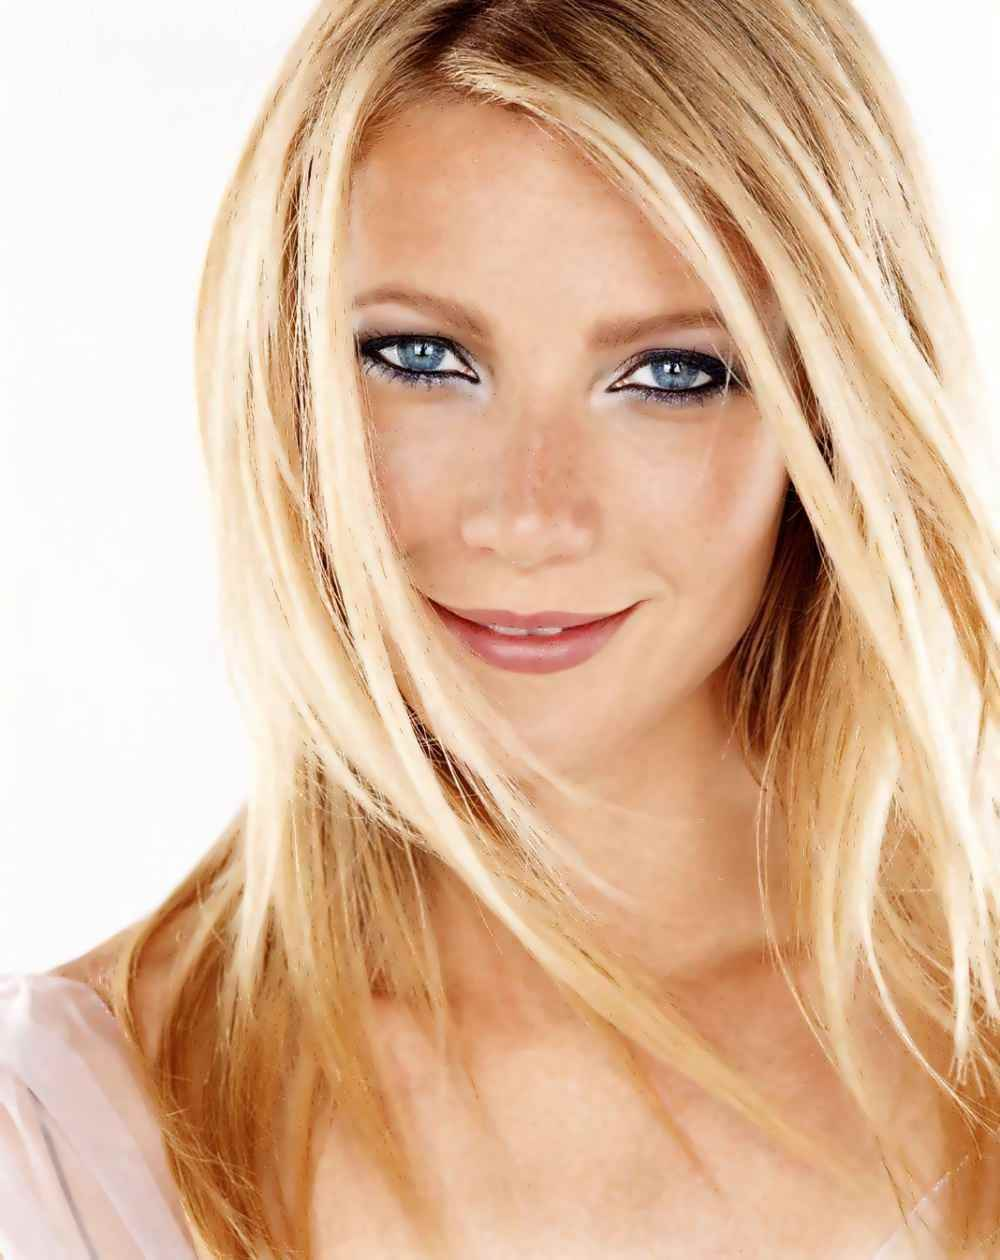 gwyneth_paltrow_from_iron_man_3